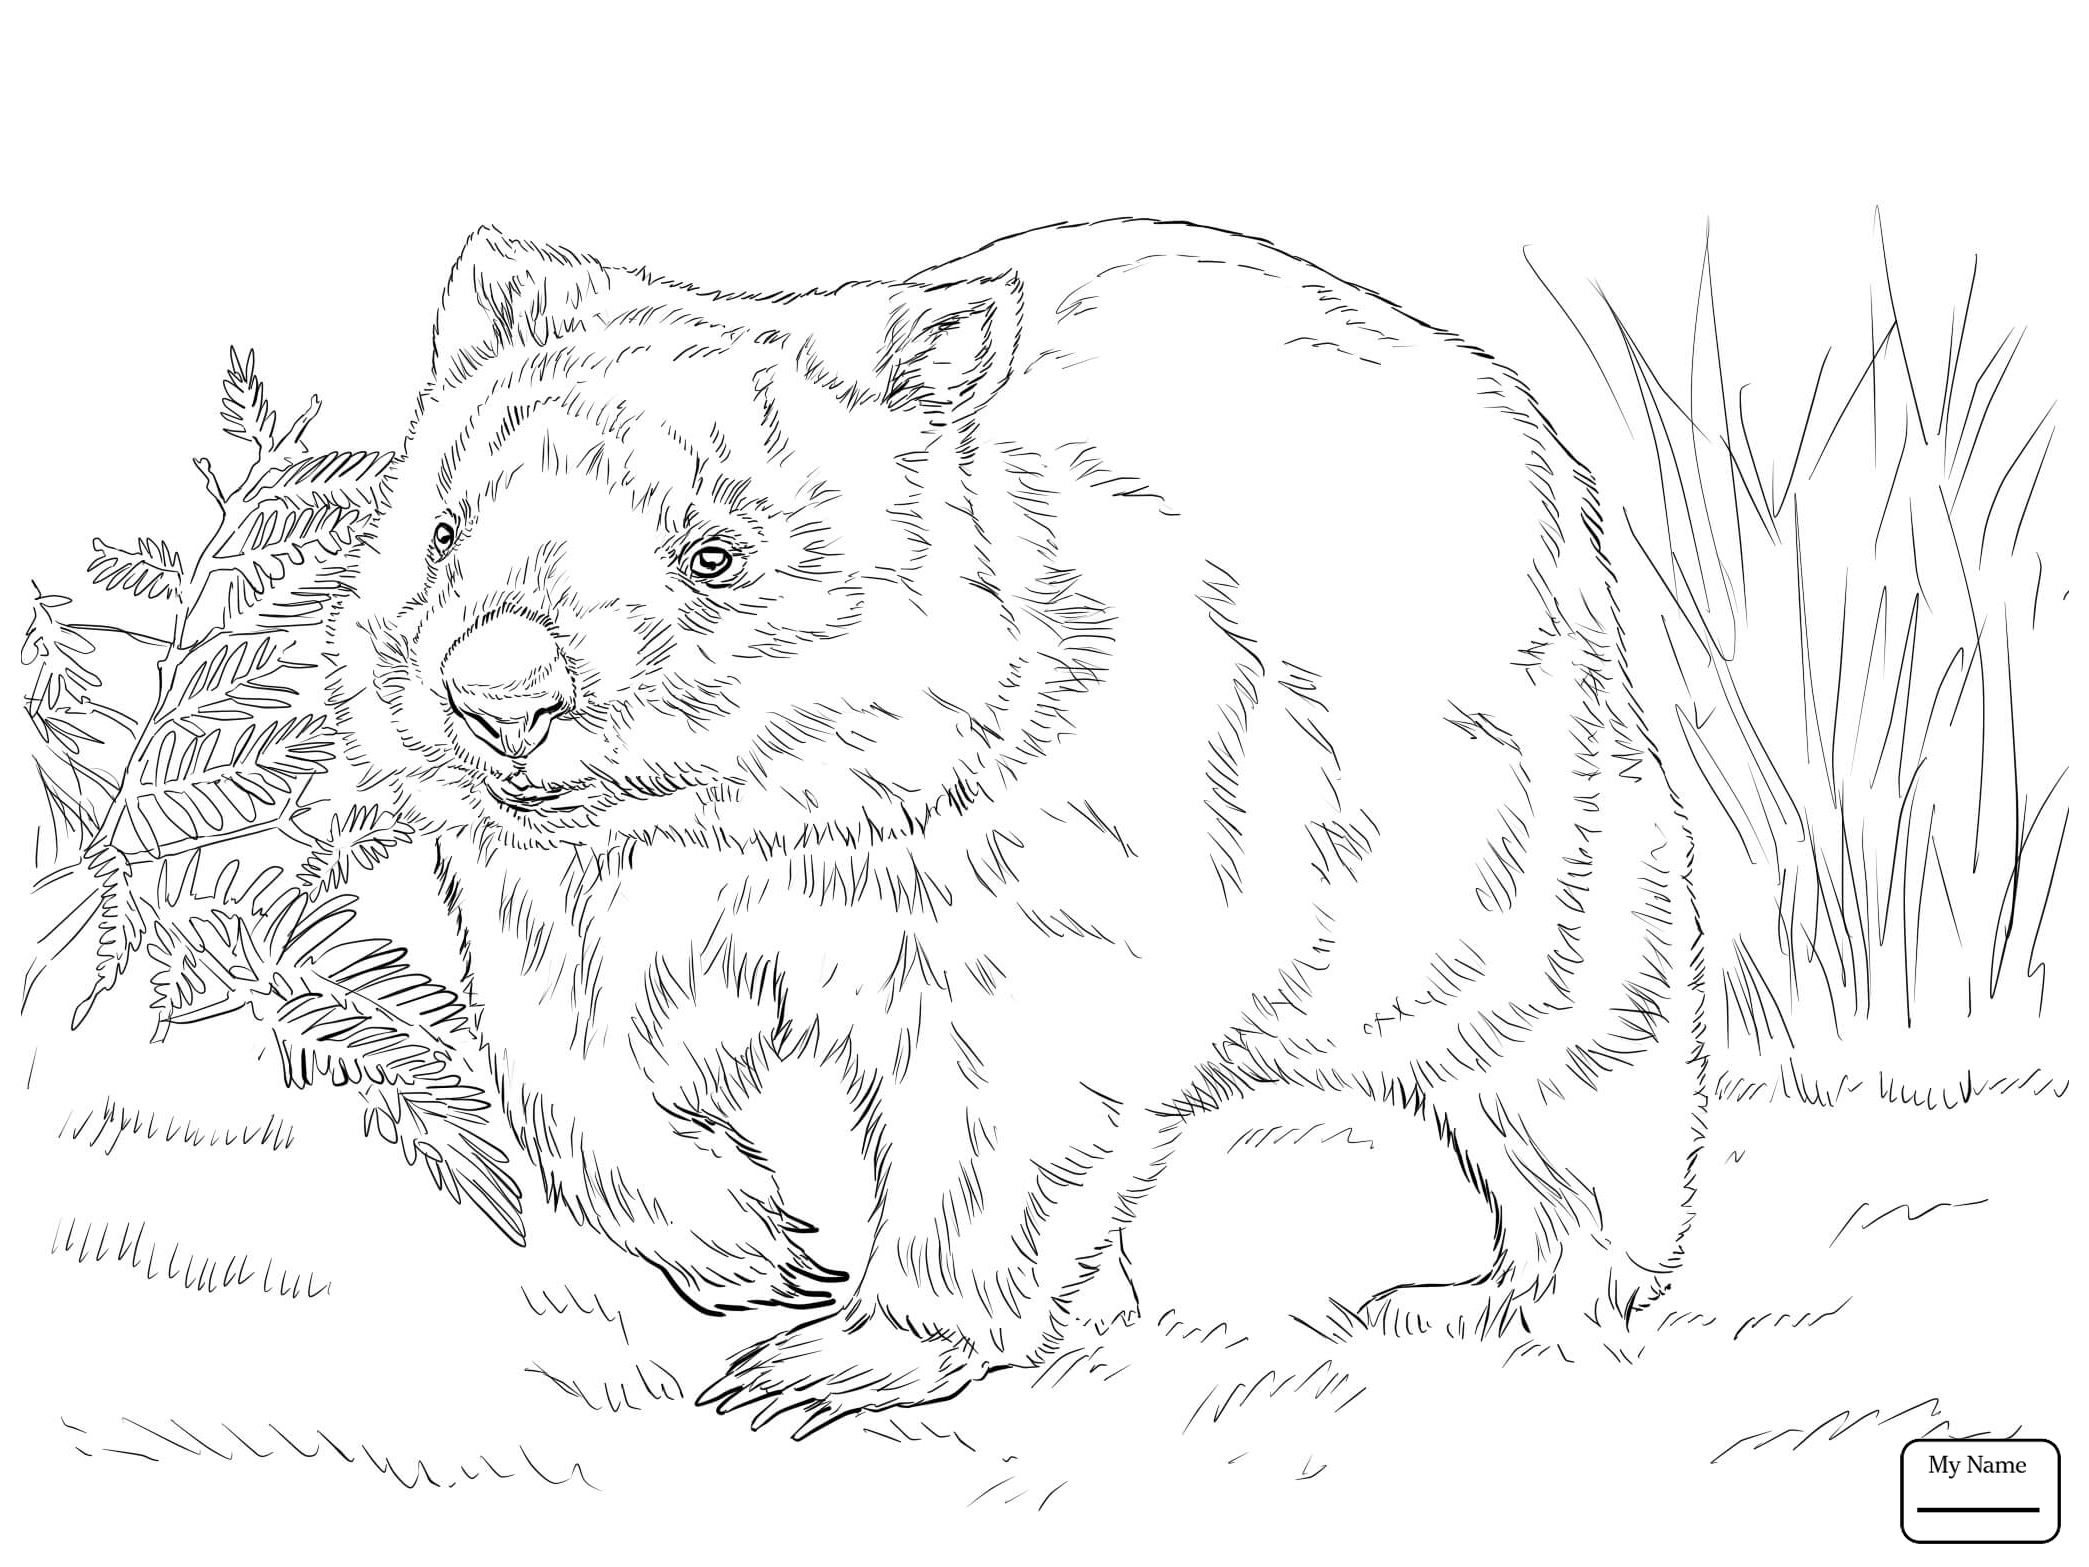 wombat colouring pages wombat scene colouring page coloring pages wombat pages colouring